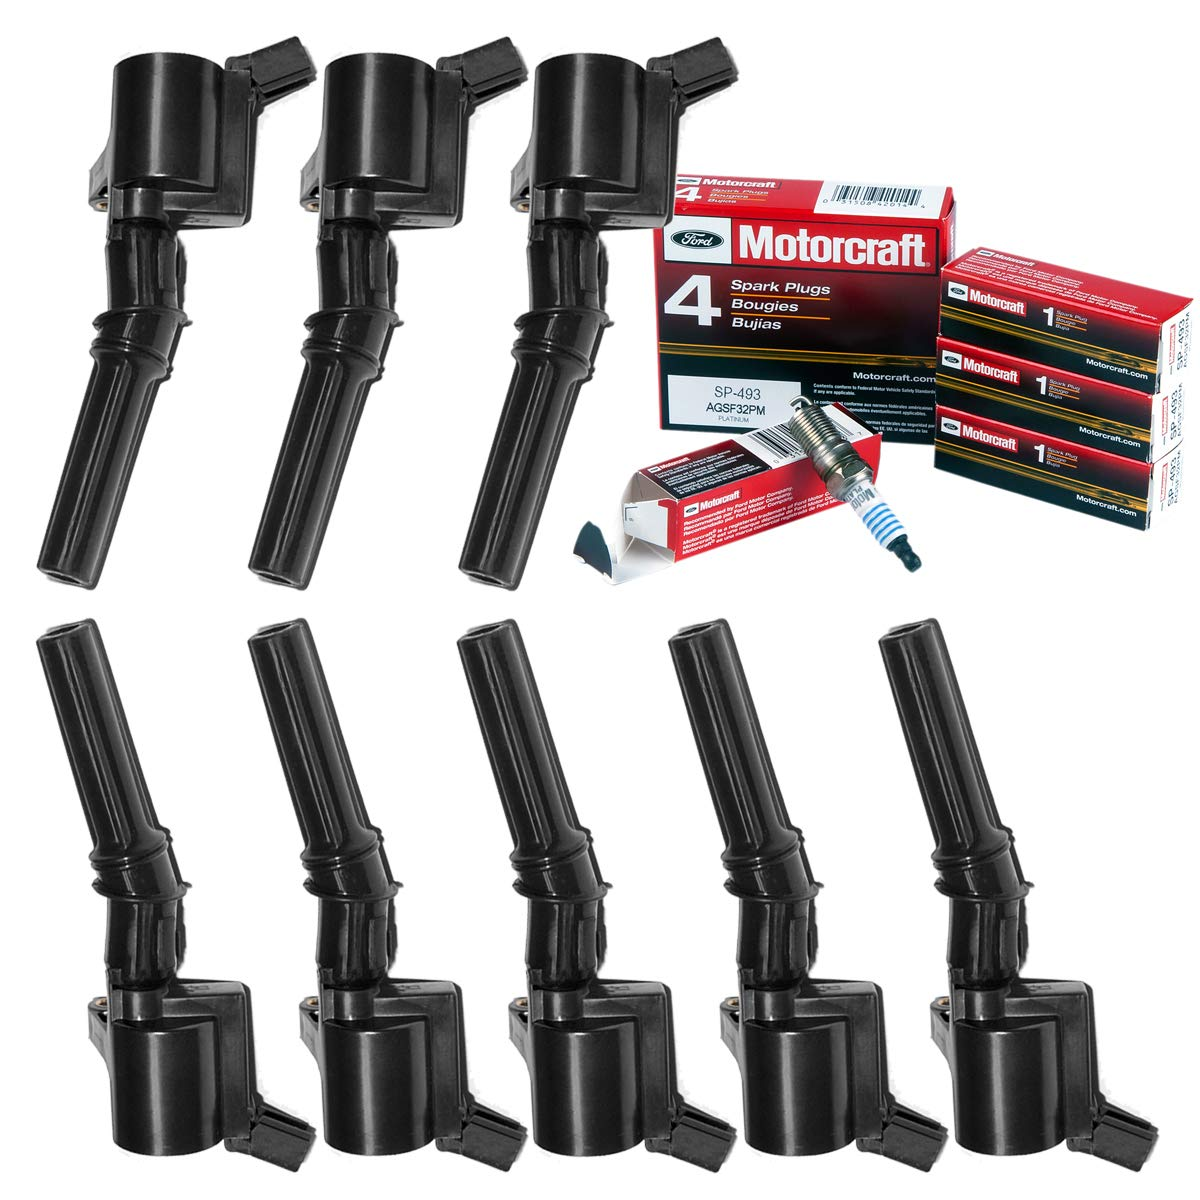 Amazon.com: MAS Ignition Coil DG508 Set of 8 & New Motorcraft Spark Plug SP493: Automotive